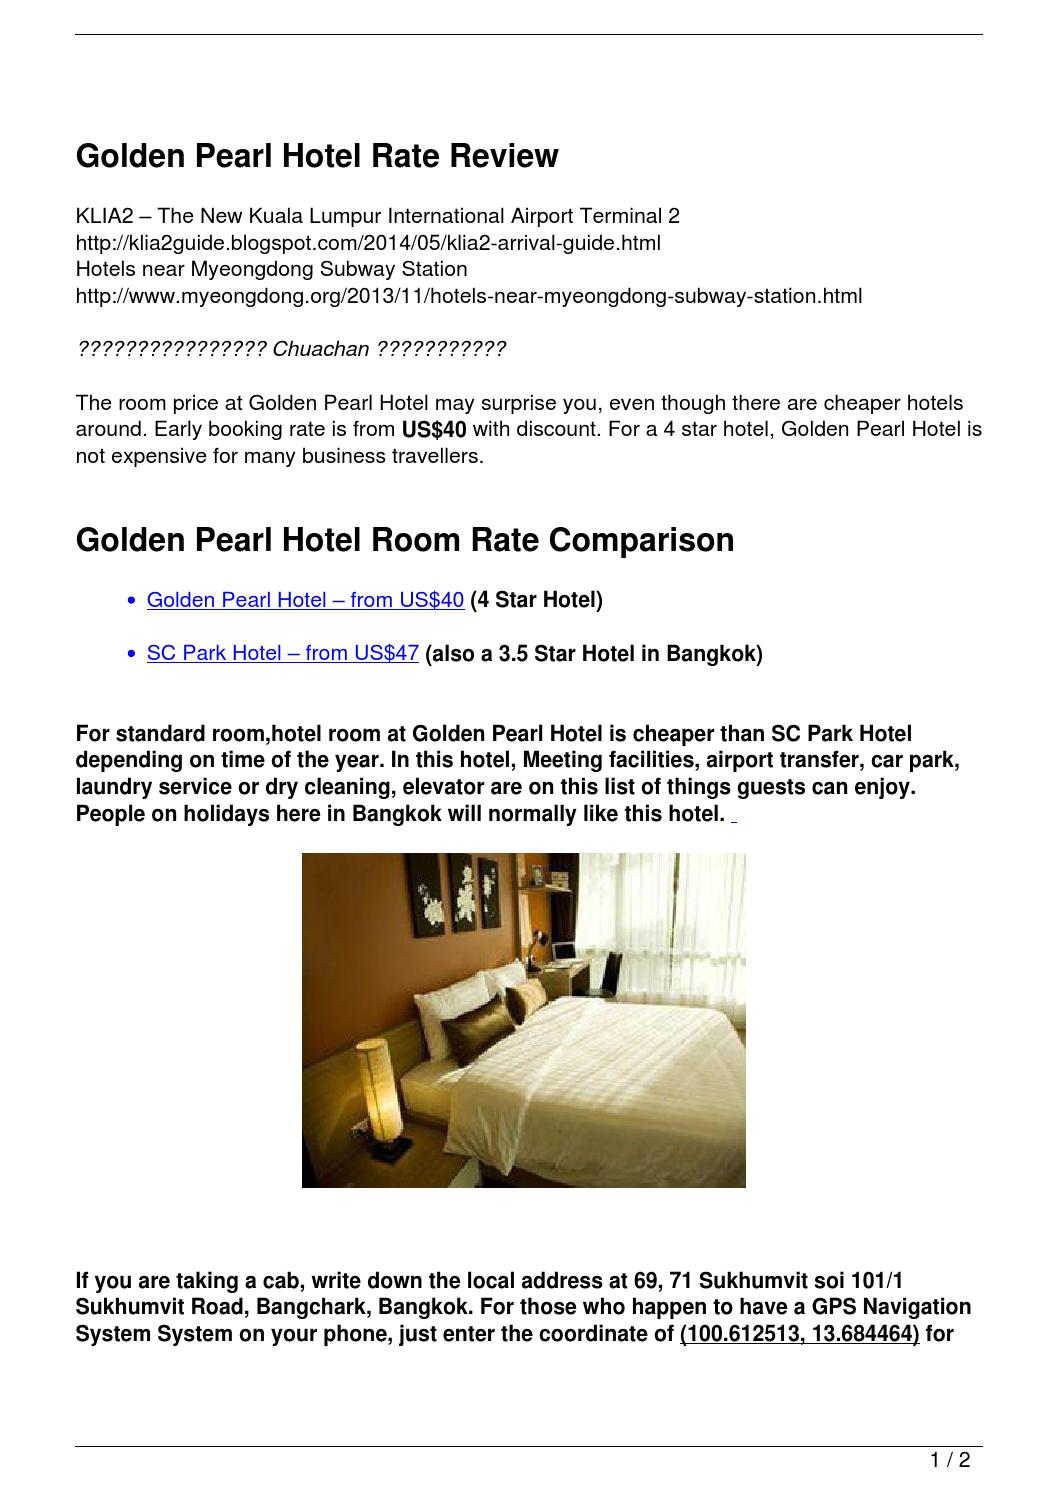 Golden Pearl Hotel Rate Review by Quick Sweet - issuu